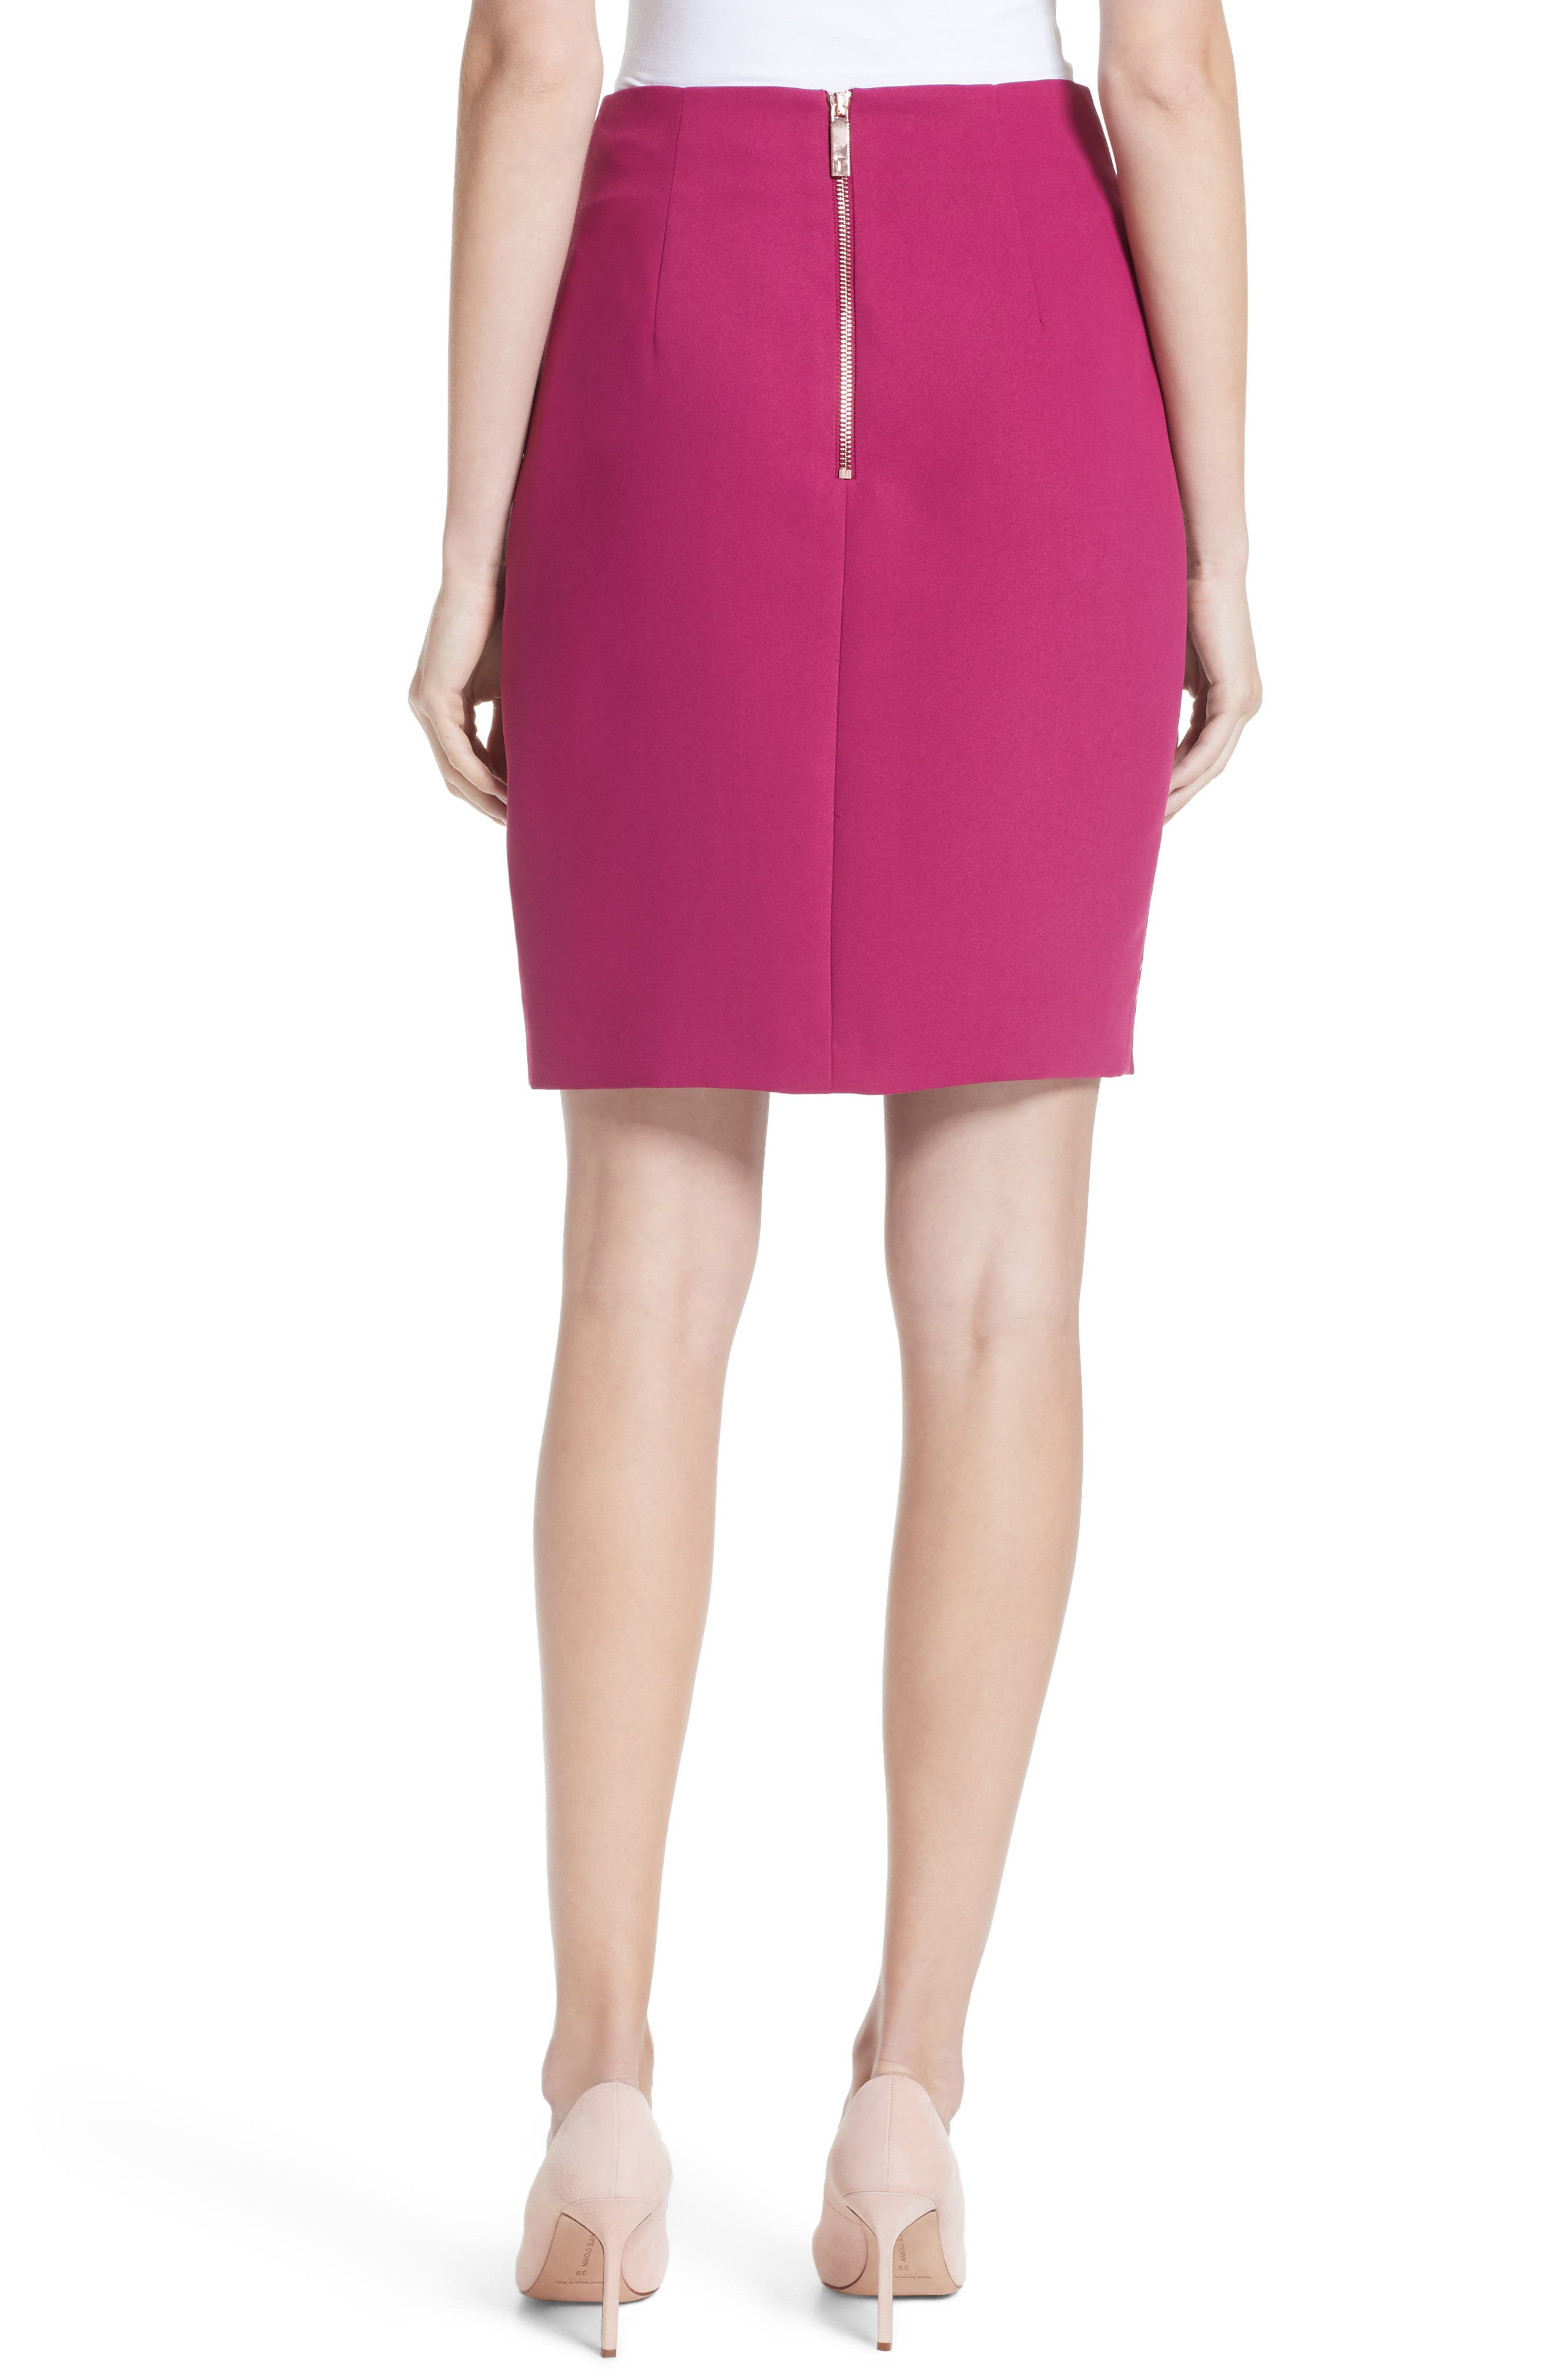 Kalena Serenity Side Slit Pencil Skirt,                             Alternate thumbnail 2, color,                             930